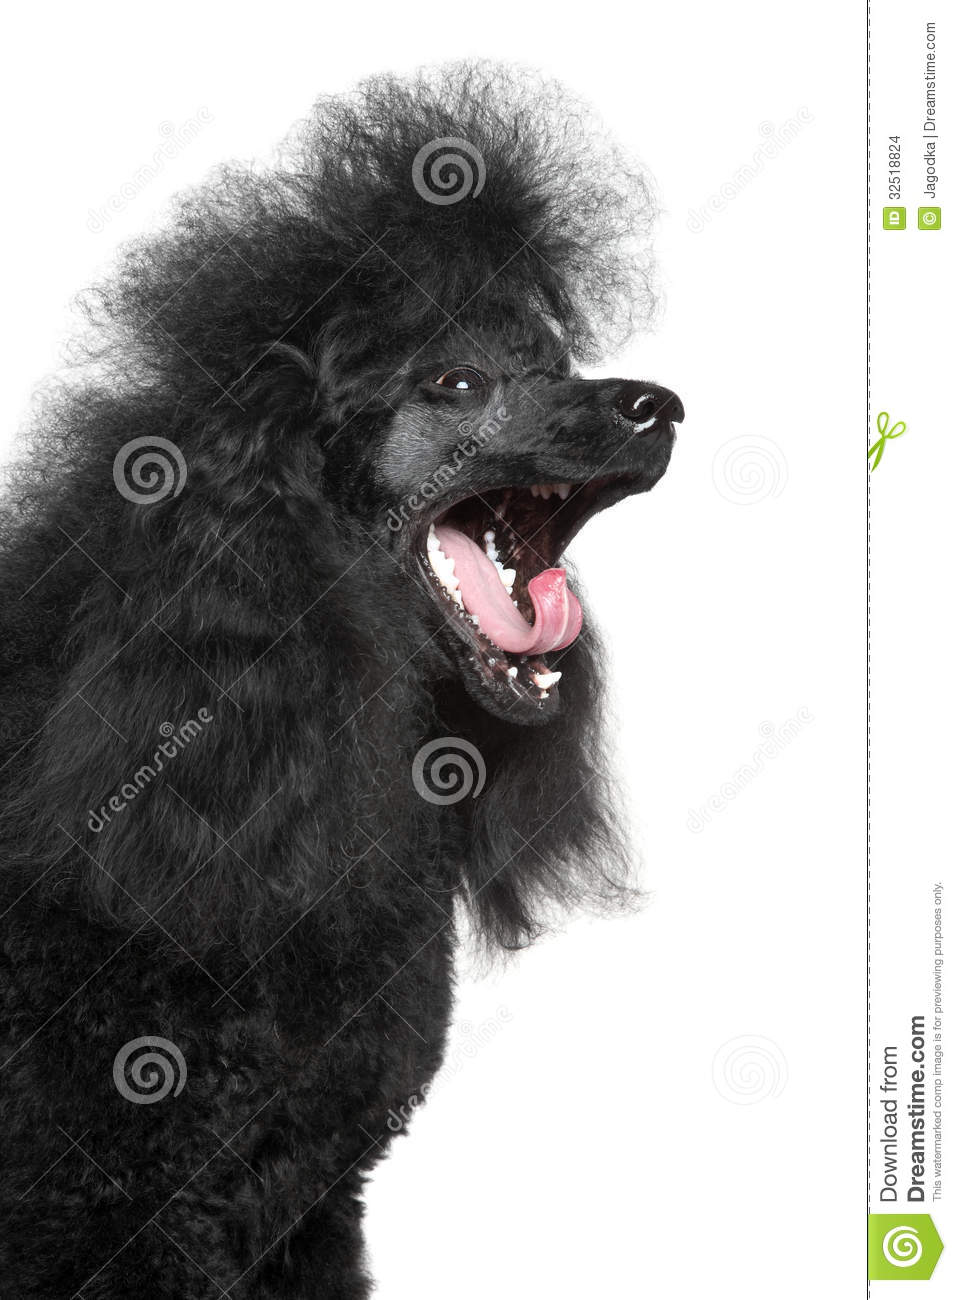 Miniature Poodle Yawn On White Background Stock Images